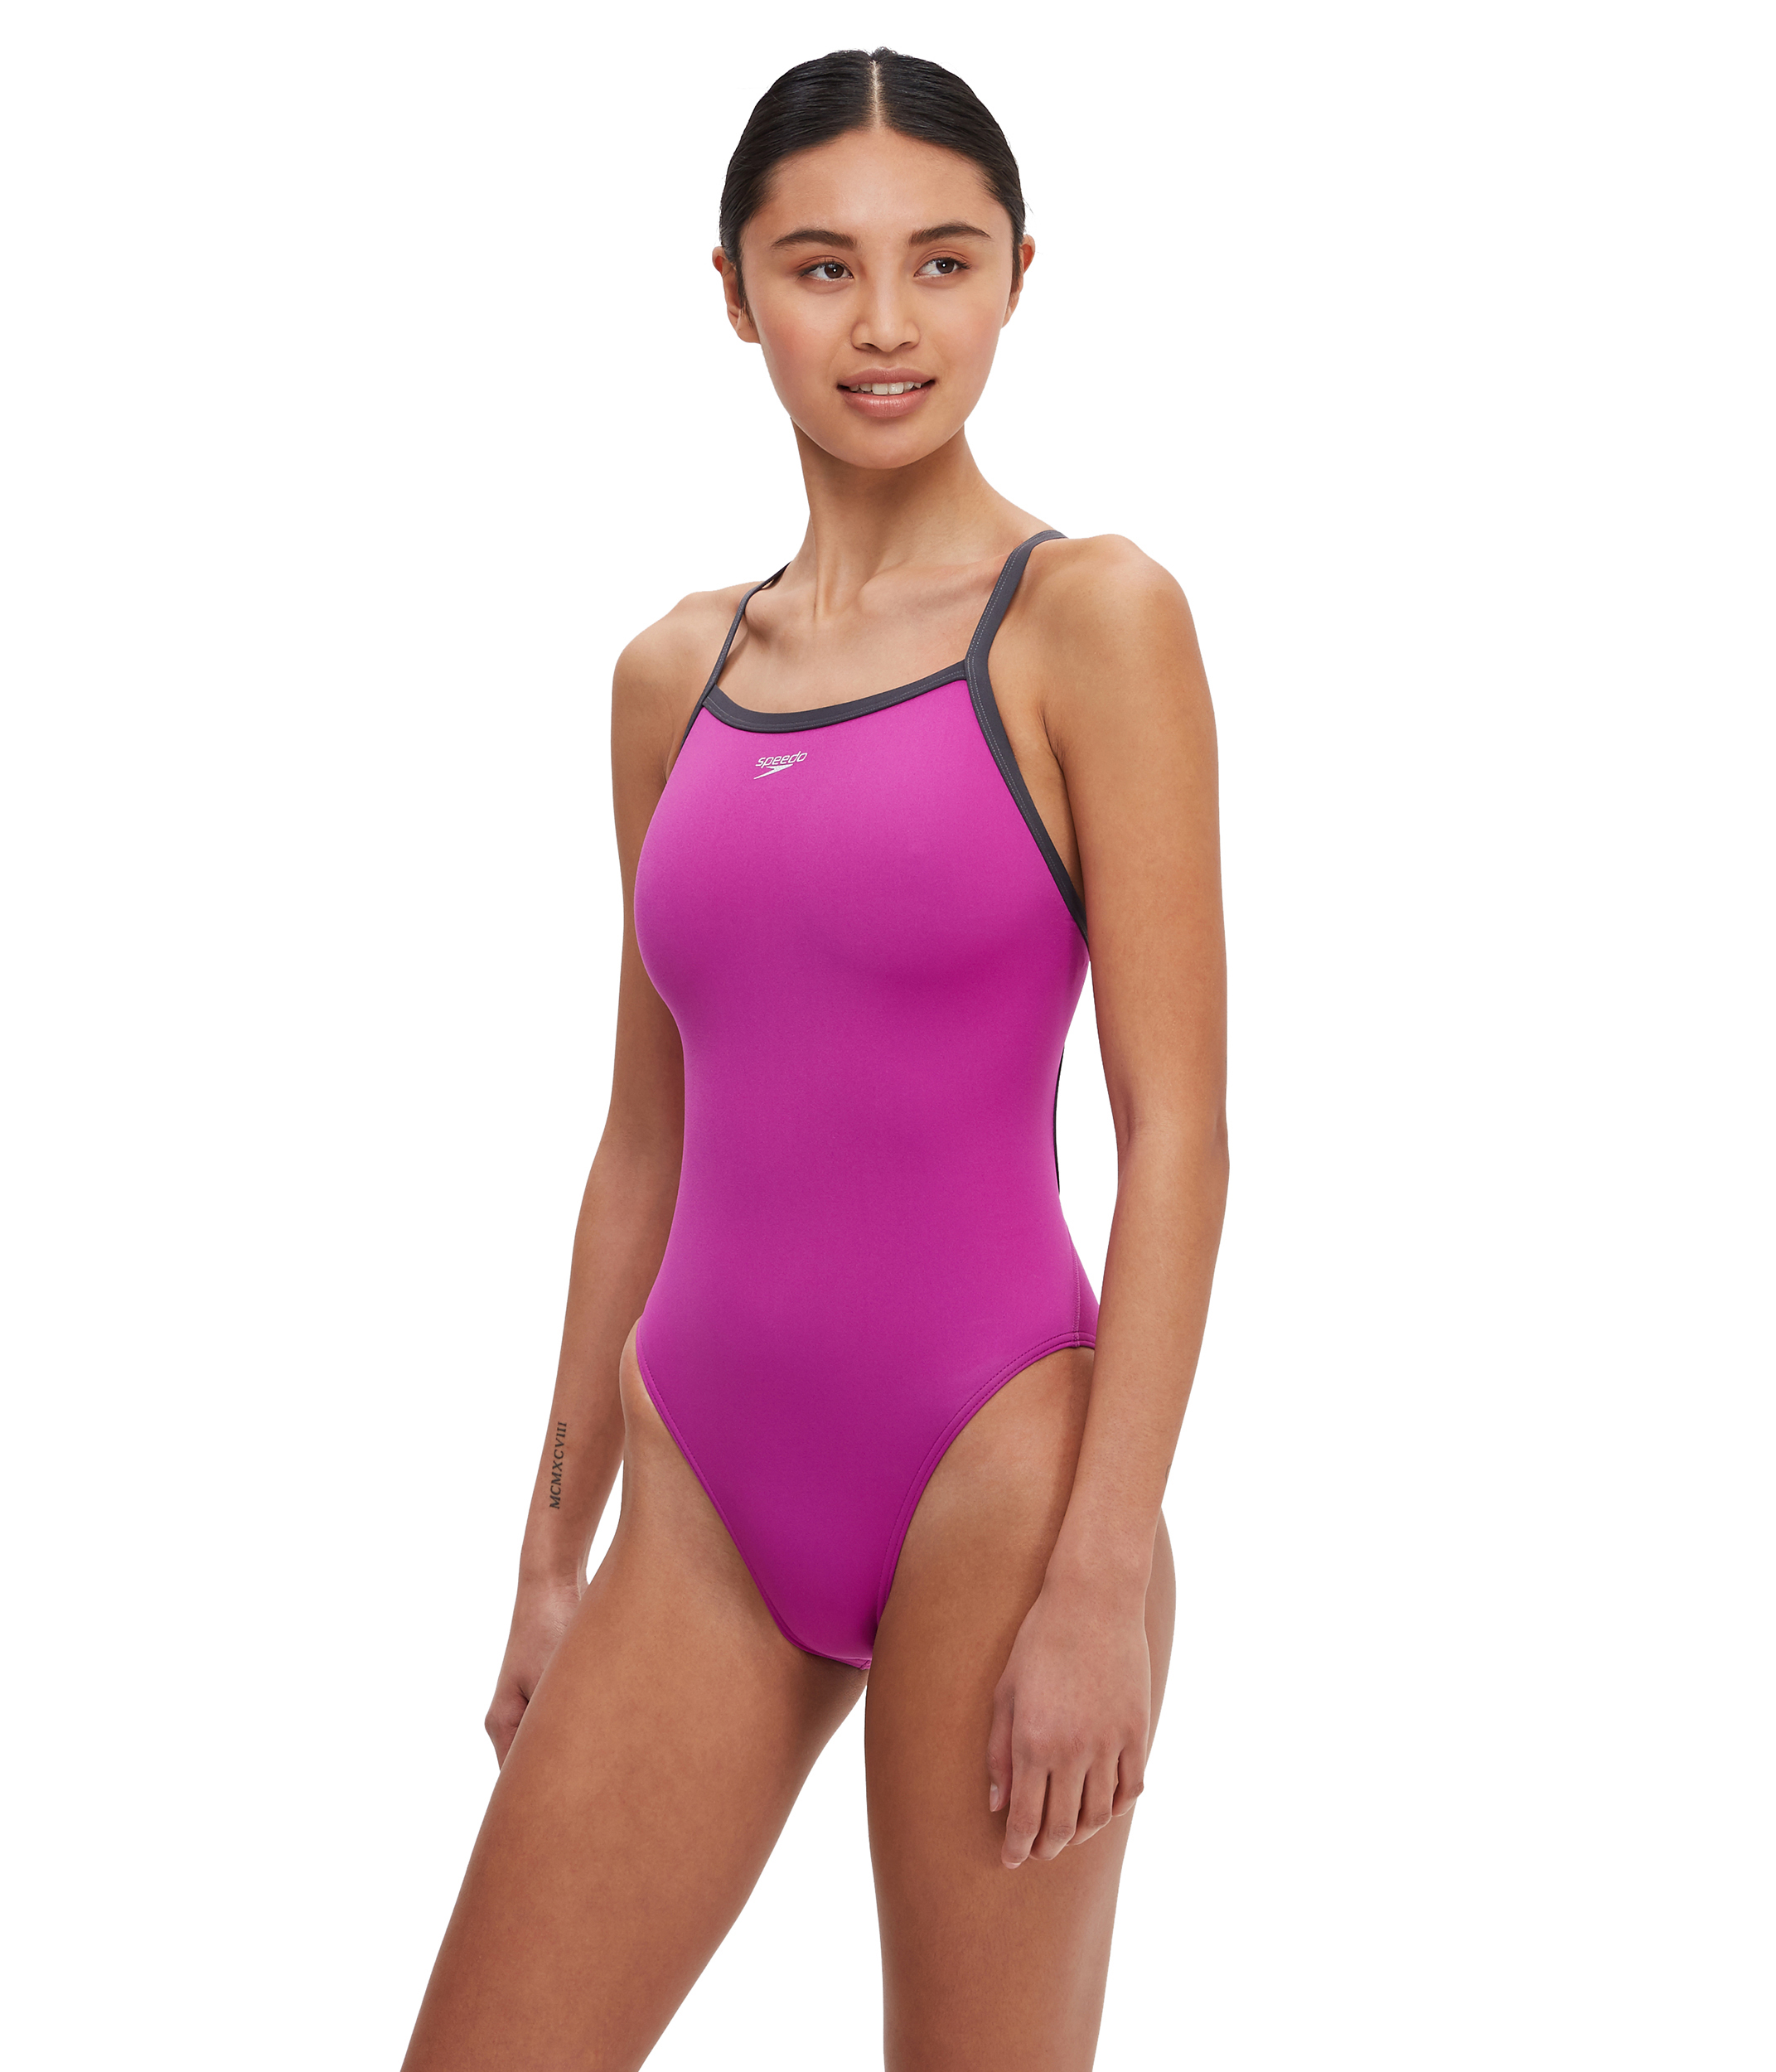 cff6eda854 Speedo Endurance Flyback Suit - Women's | MEC